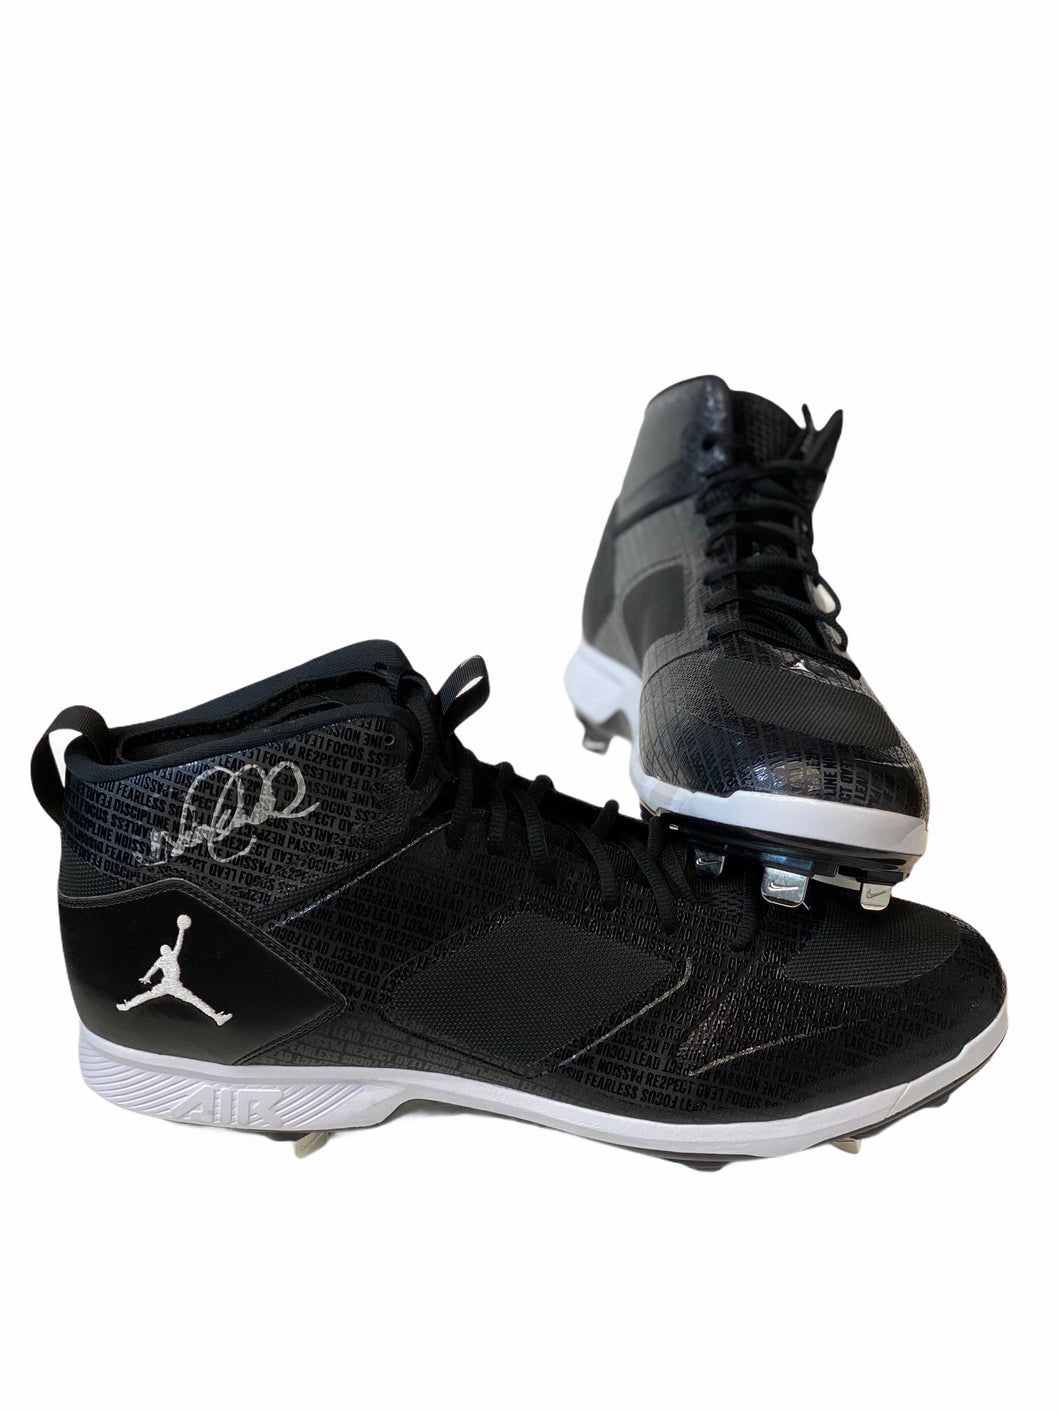 Cleats - Tenis | Yankees | Derek Jeter